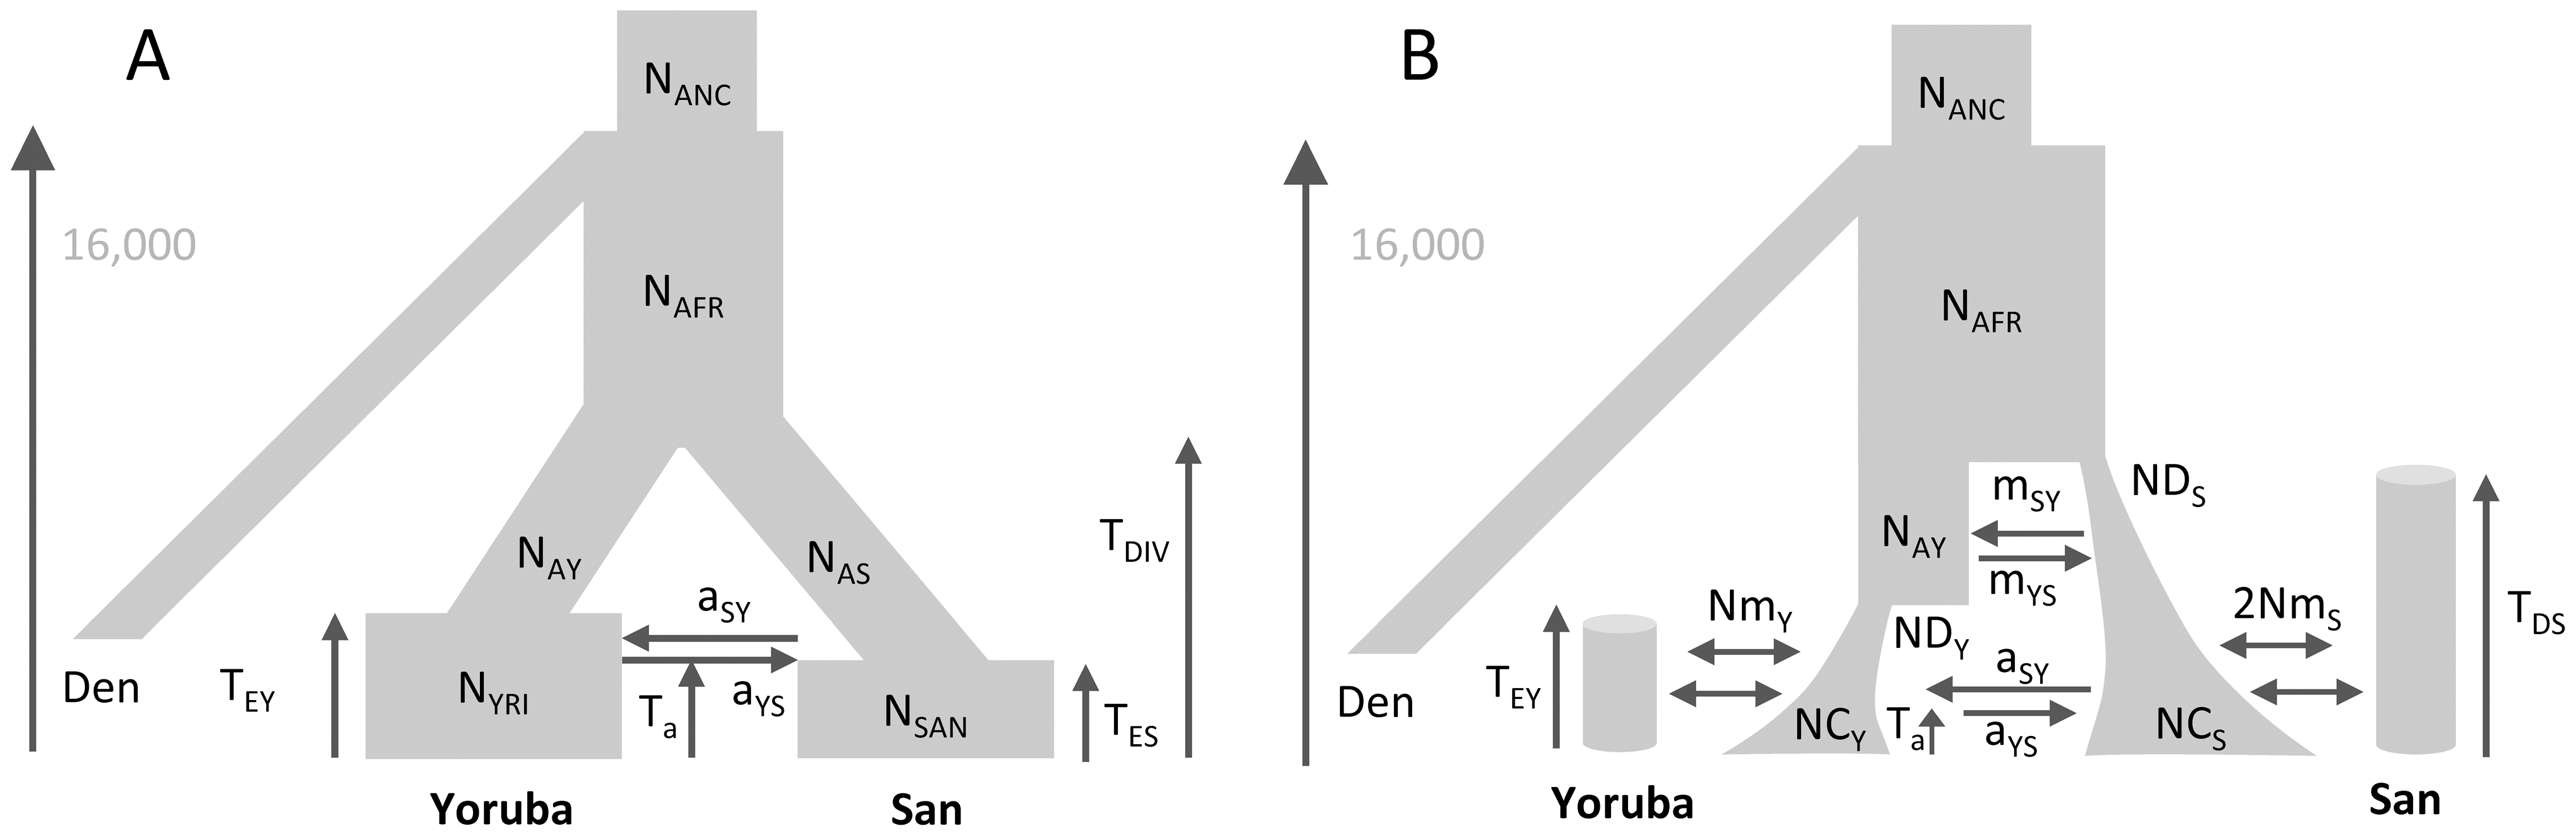 Alternative demographic models for two African populations.